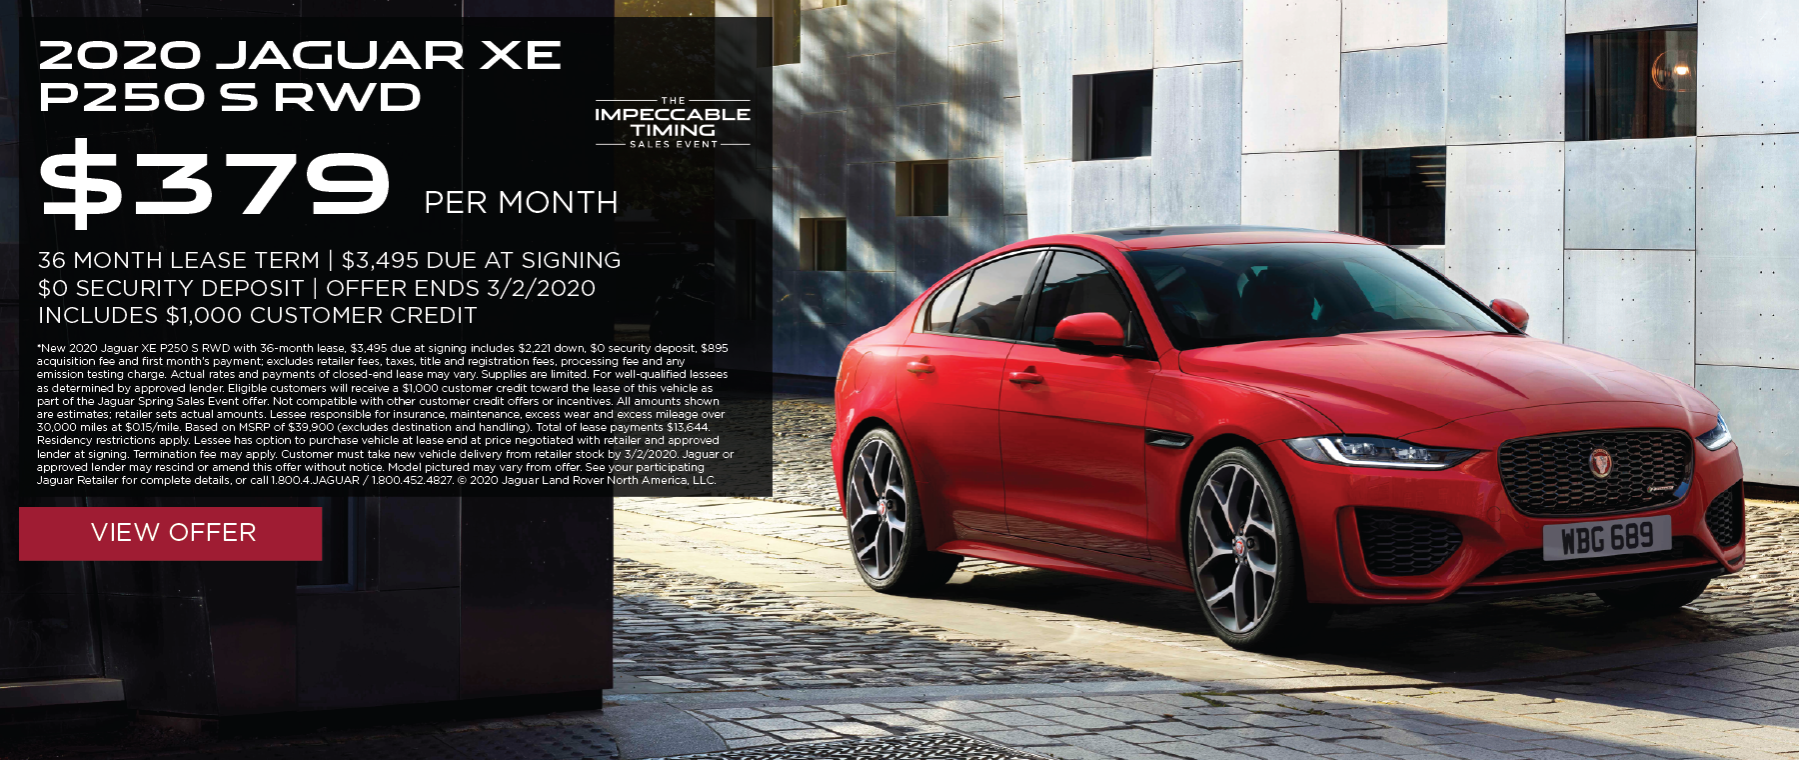 2020 JAGUAR XE P250 S RWD PARKED ON BRICK ROAD. $379 PER MONTH. 36 MONTH LEASE TERM WITH $3,495 DUE AT SIGNING. INCLUDES $1,000 CUSTOMER CREDIT.  $0 SECURITY DEPOSIT. 10,000 MILES PER YEAR. OFFER ENDS 3/2/2020. THE IMPECCABLE TIMING SALES EVENT.